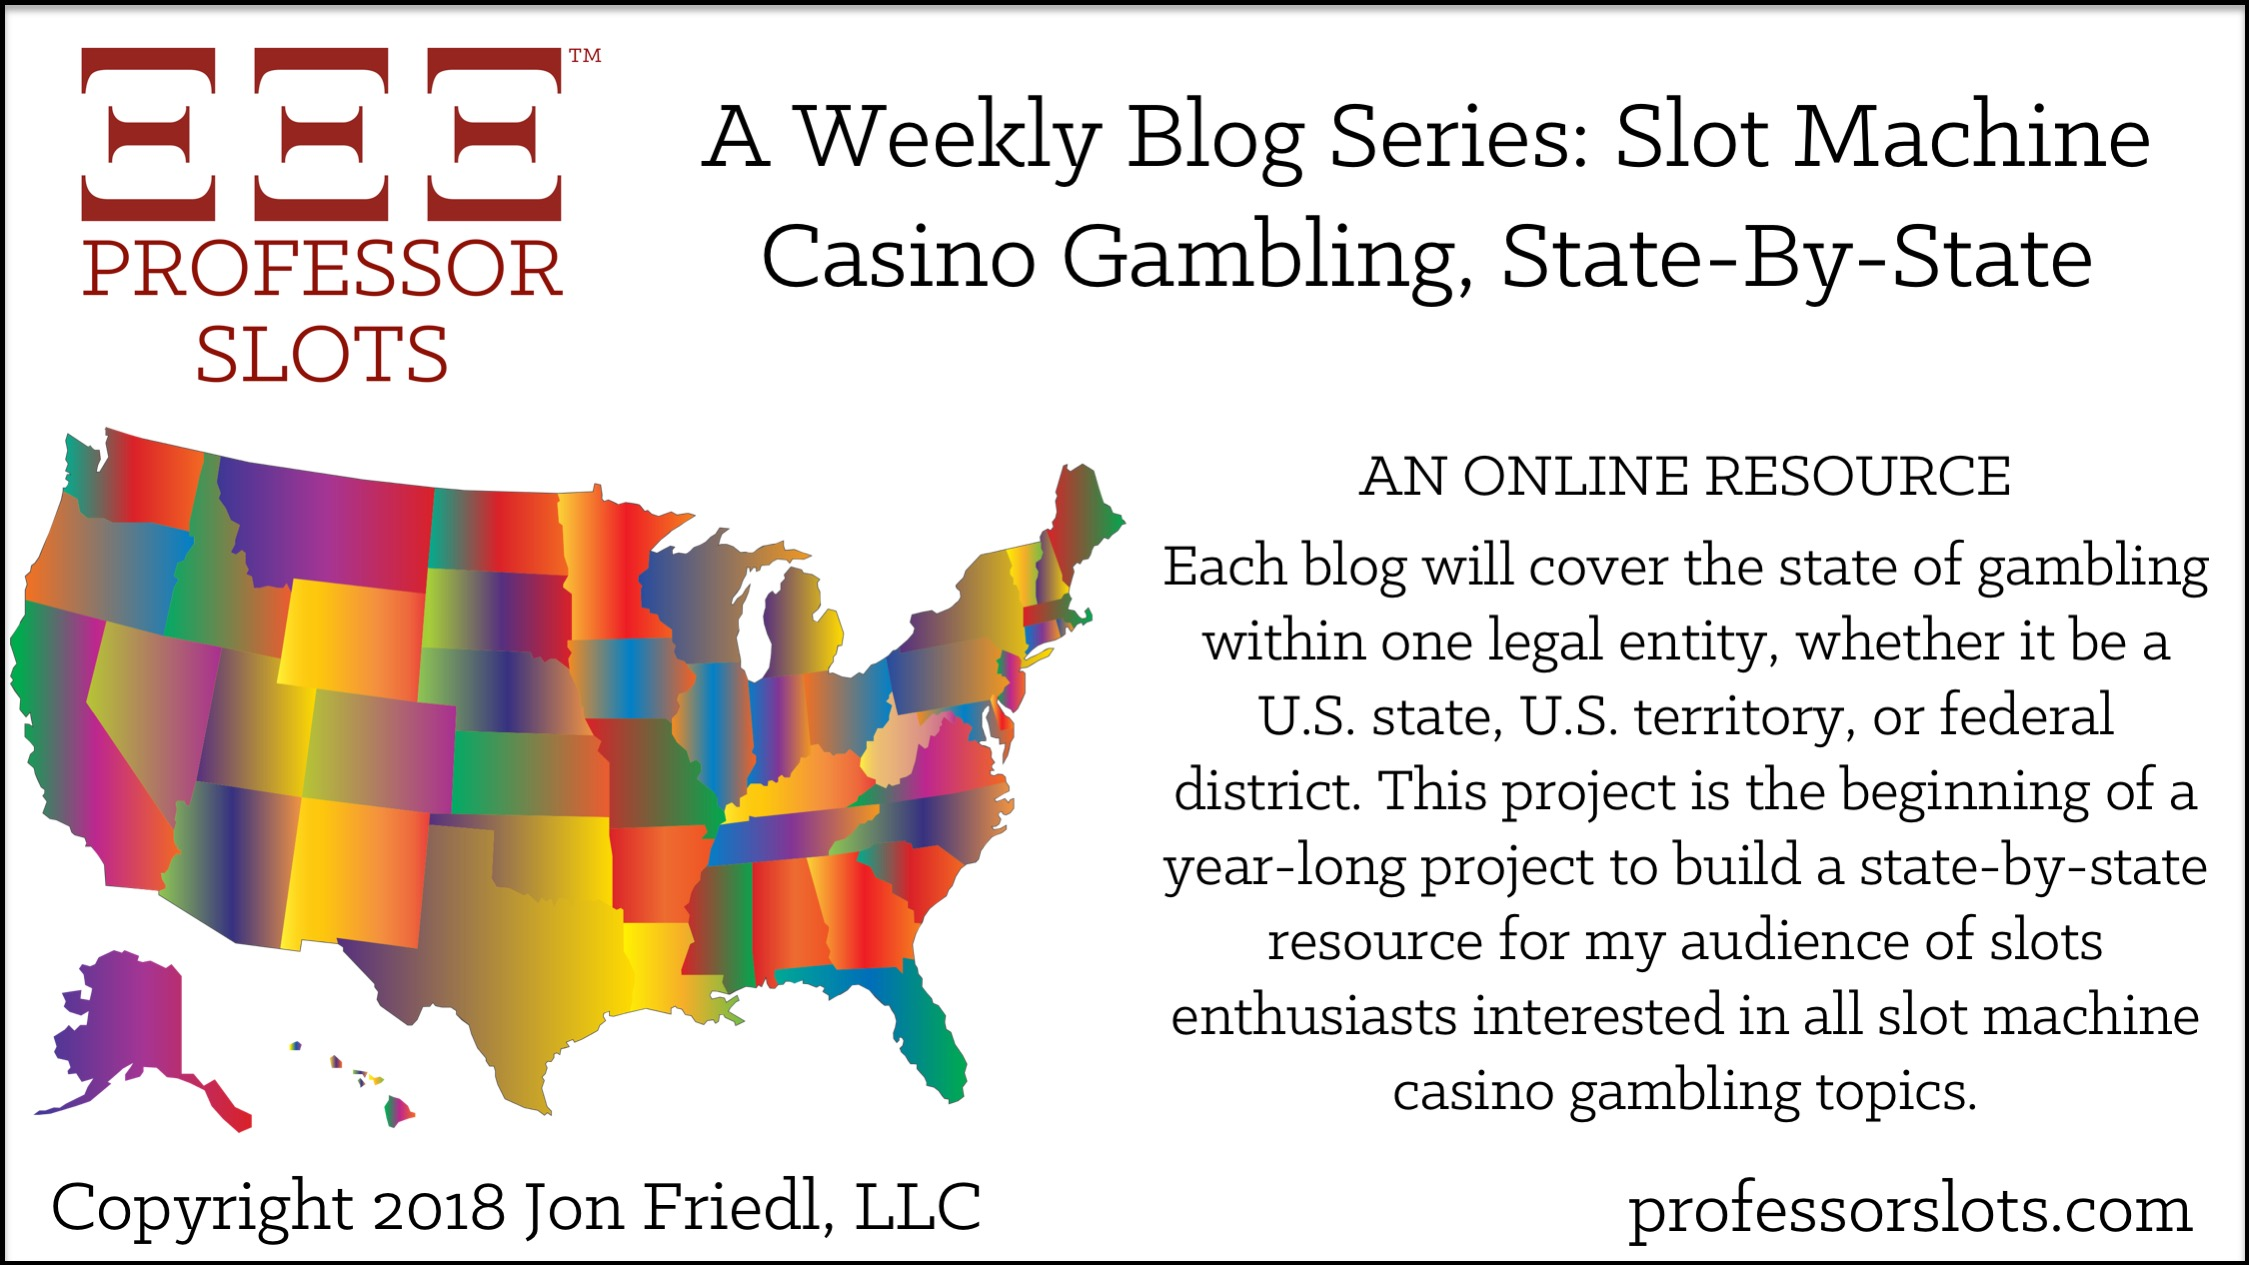 Building an online resource for slots enthusiasts and What to Expect from Professor Slots in 2018.